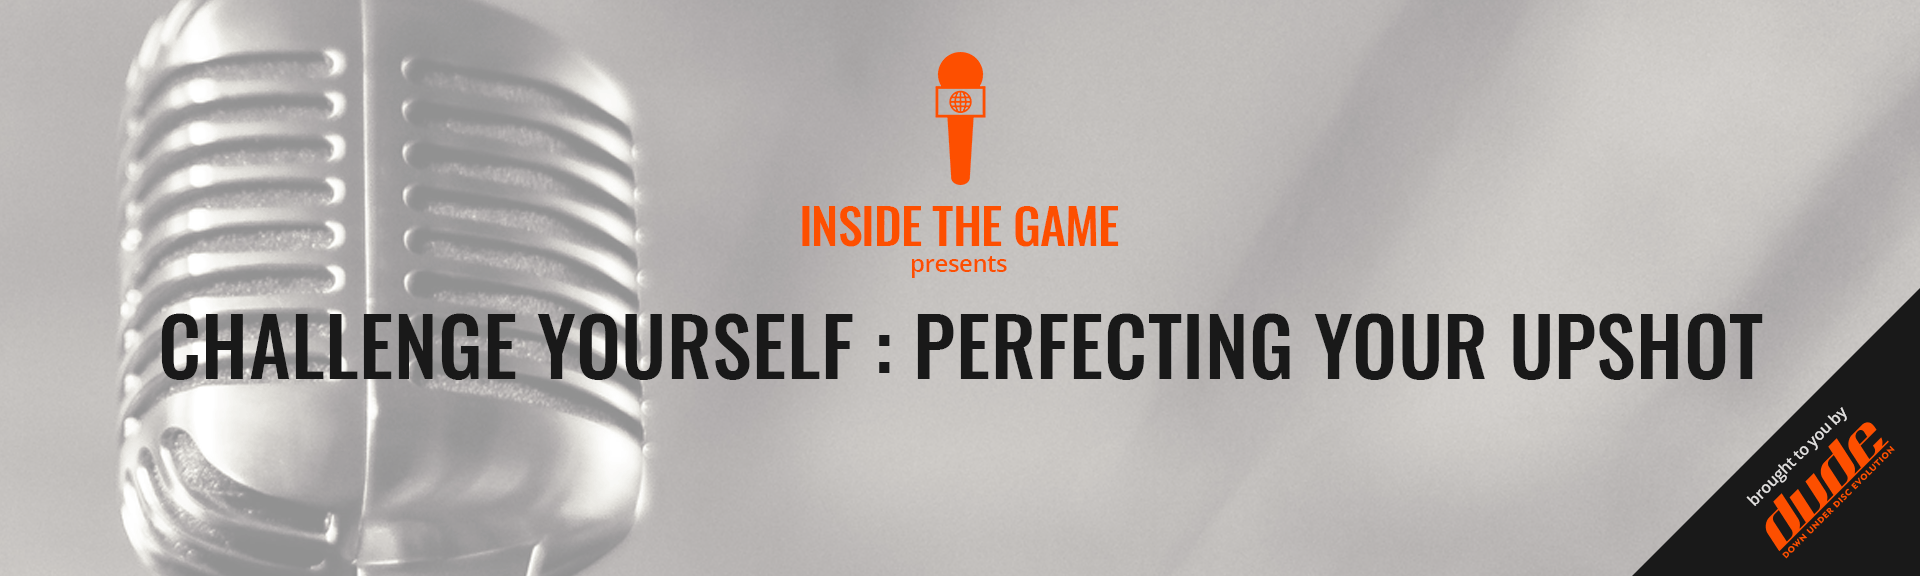 Inside the Game - Challenge Yourself - Perfecting your Upshot